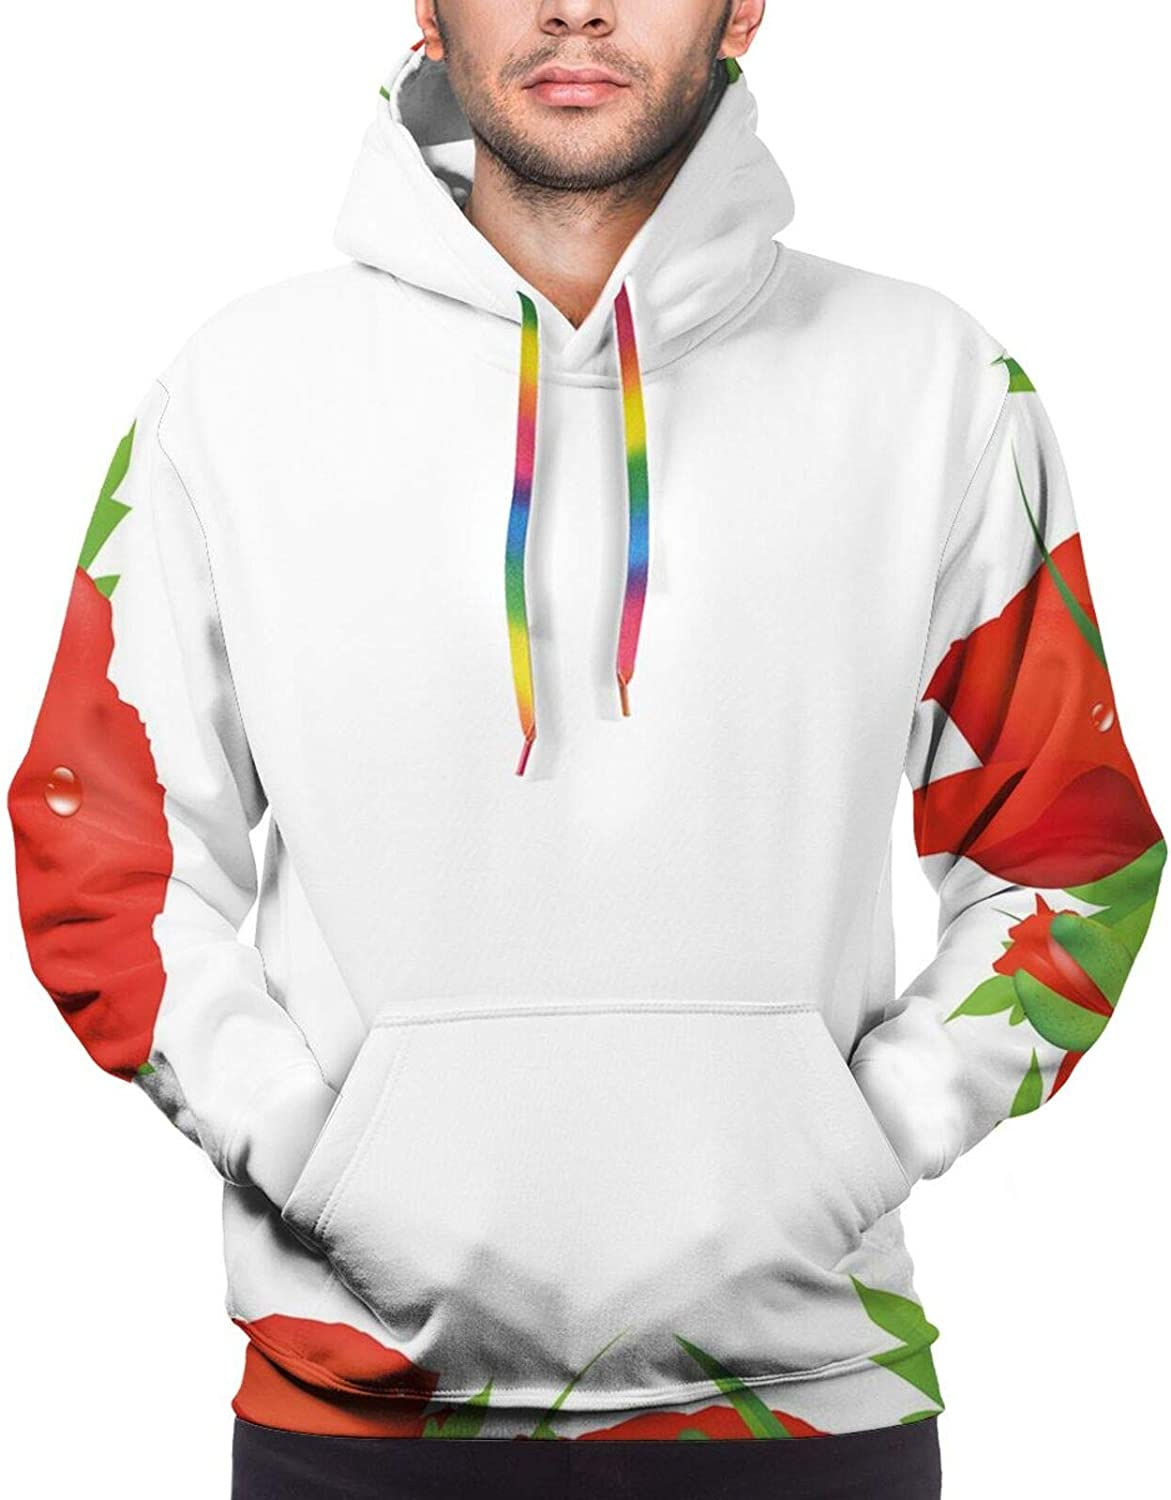 Men's Hoodies Sweatshirts,Lively Summer Meadow Frame Efflorescing Field in The Countryside Theme